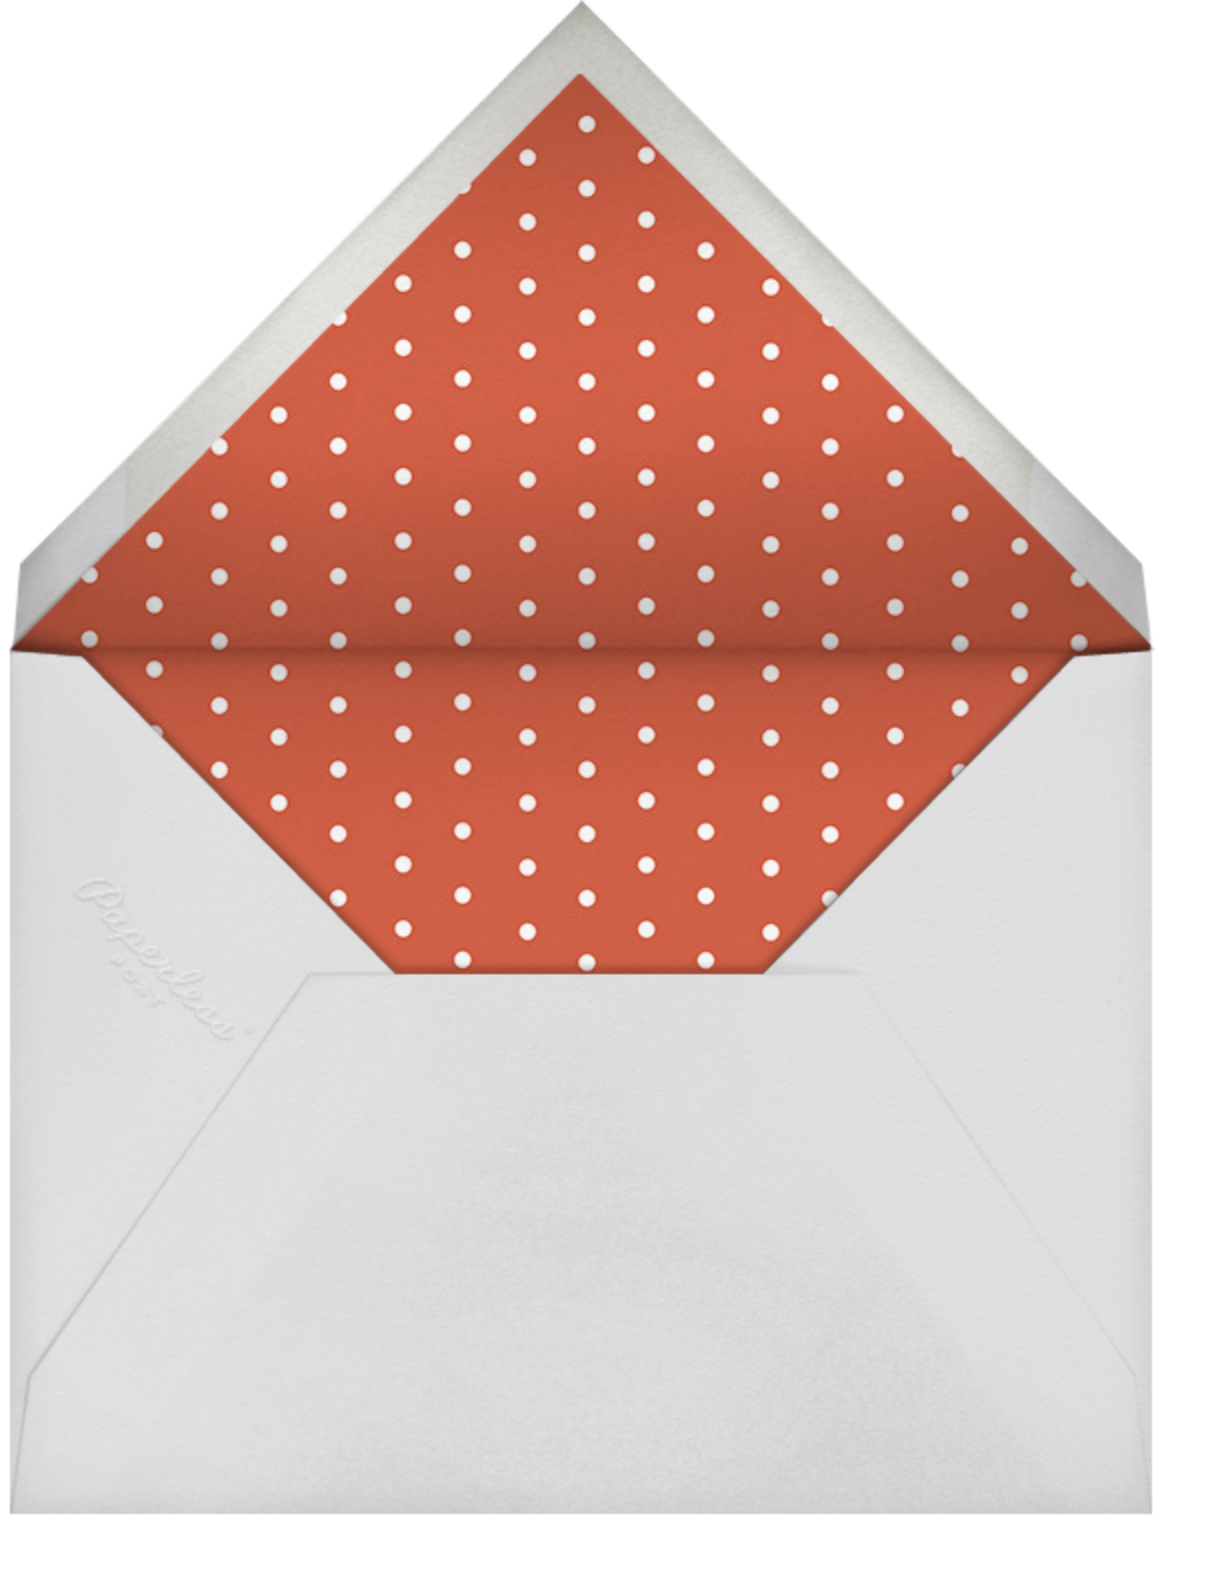 Reindeer Glades - Rifle Paper Co. - Holiday cards - envelope back